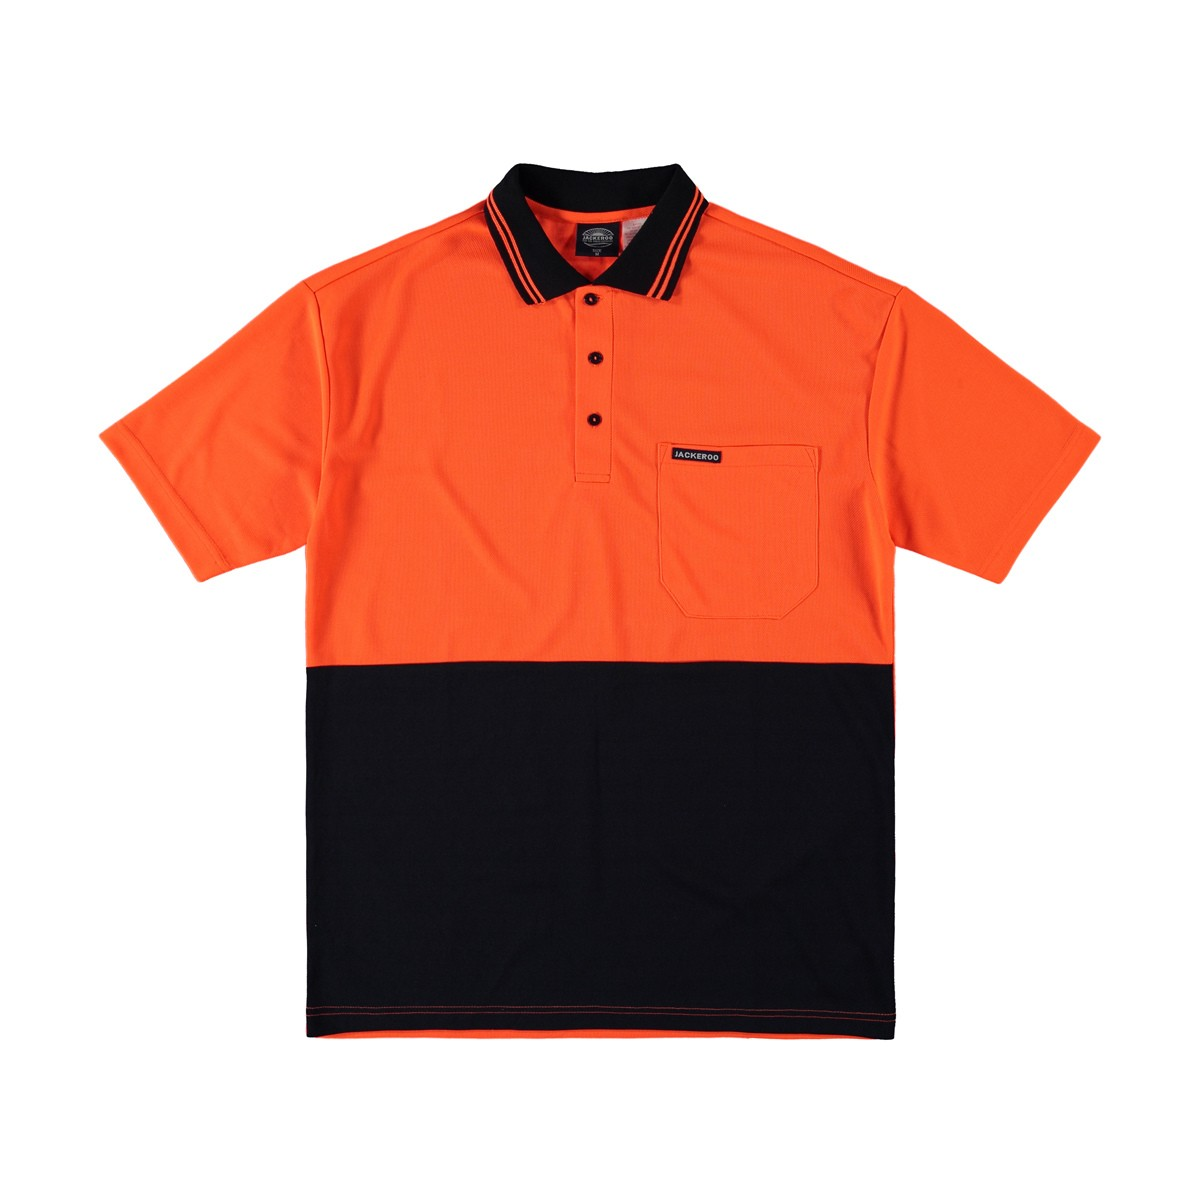 custom short sleeve orange fluro